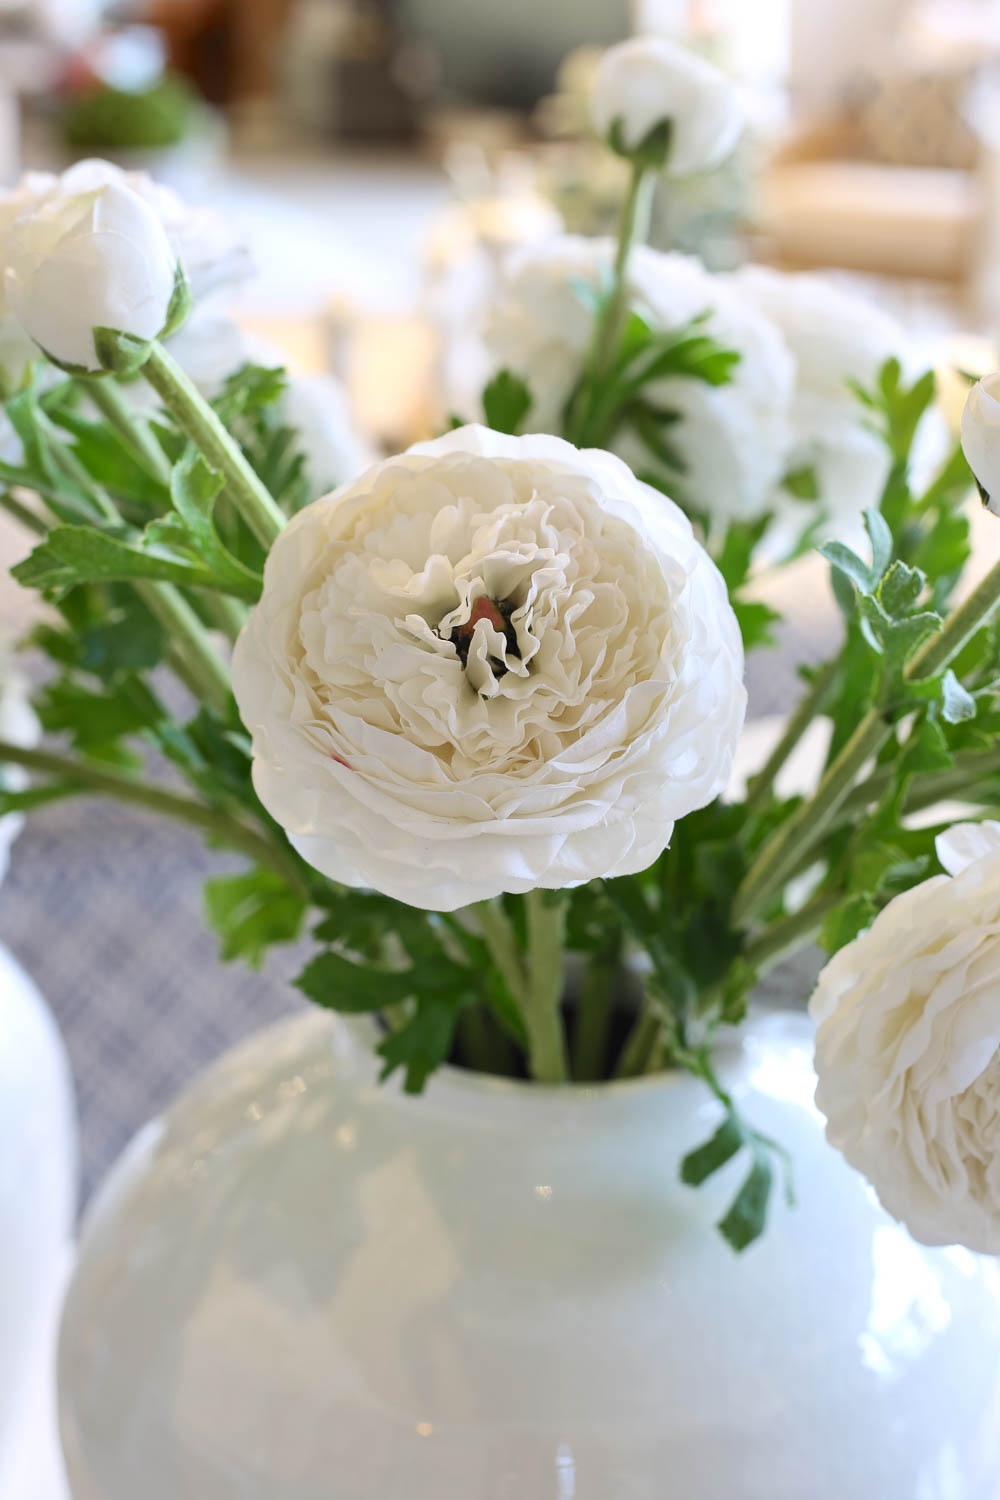 Real touch faux buttercup ranunculus that look and feel so real!